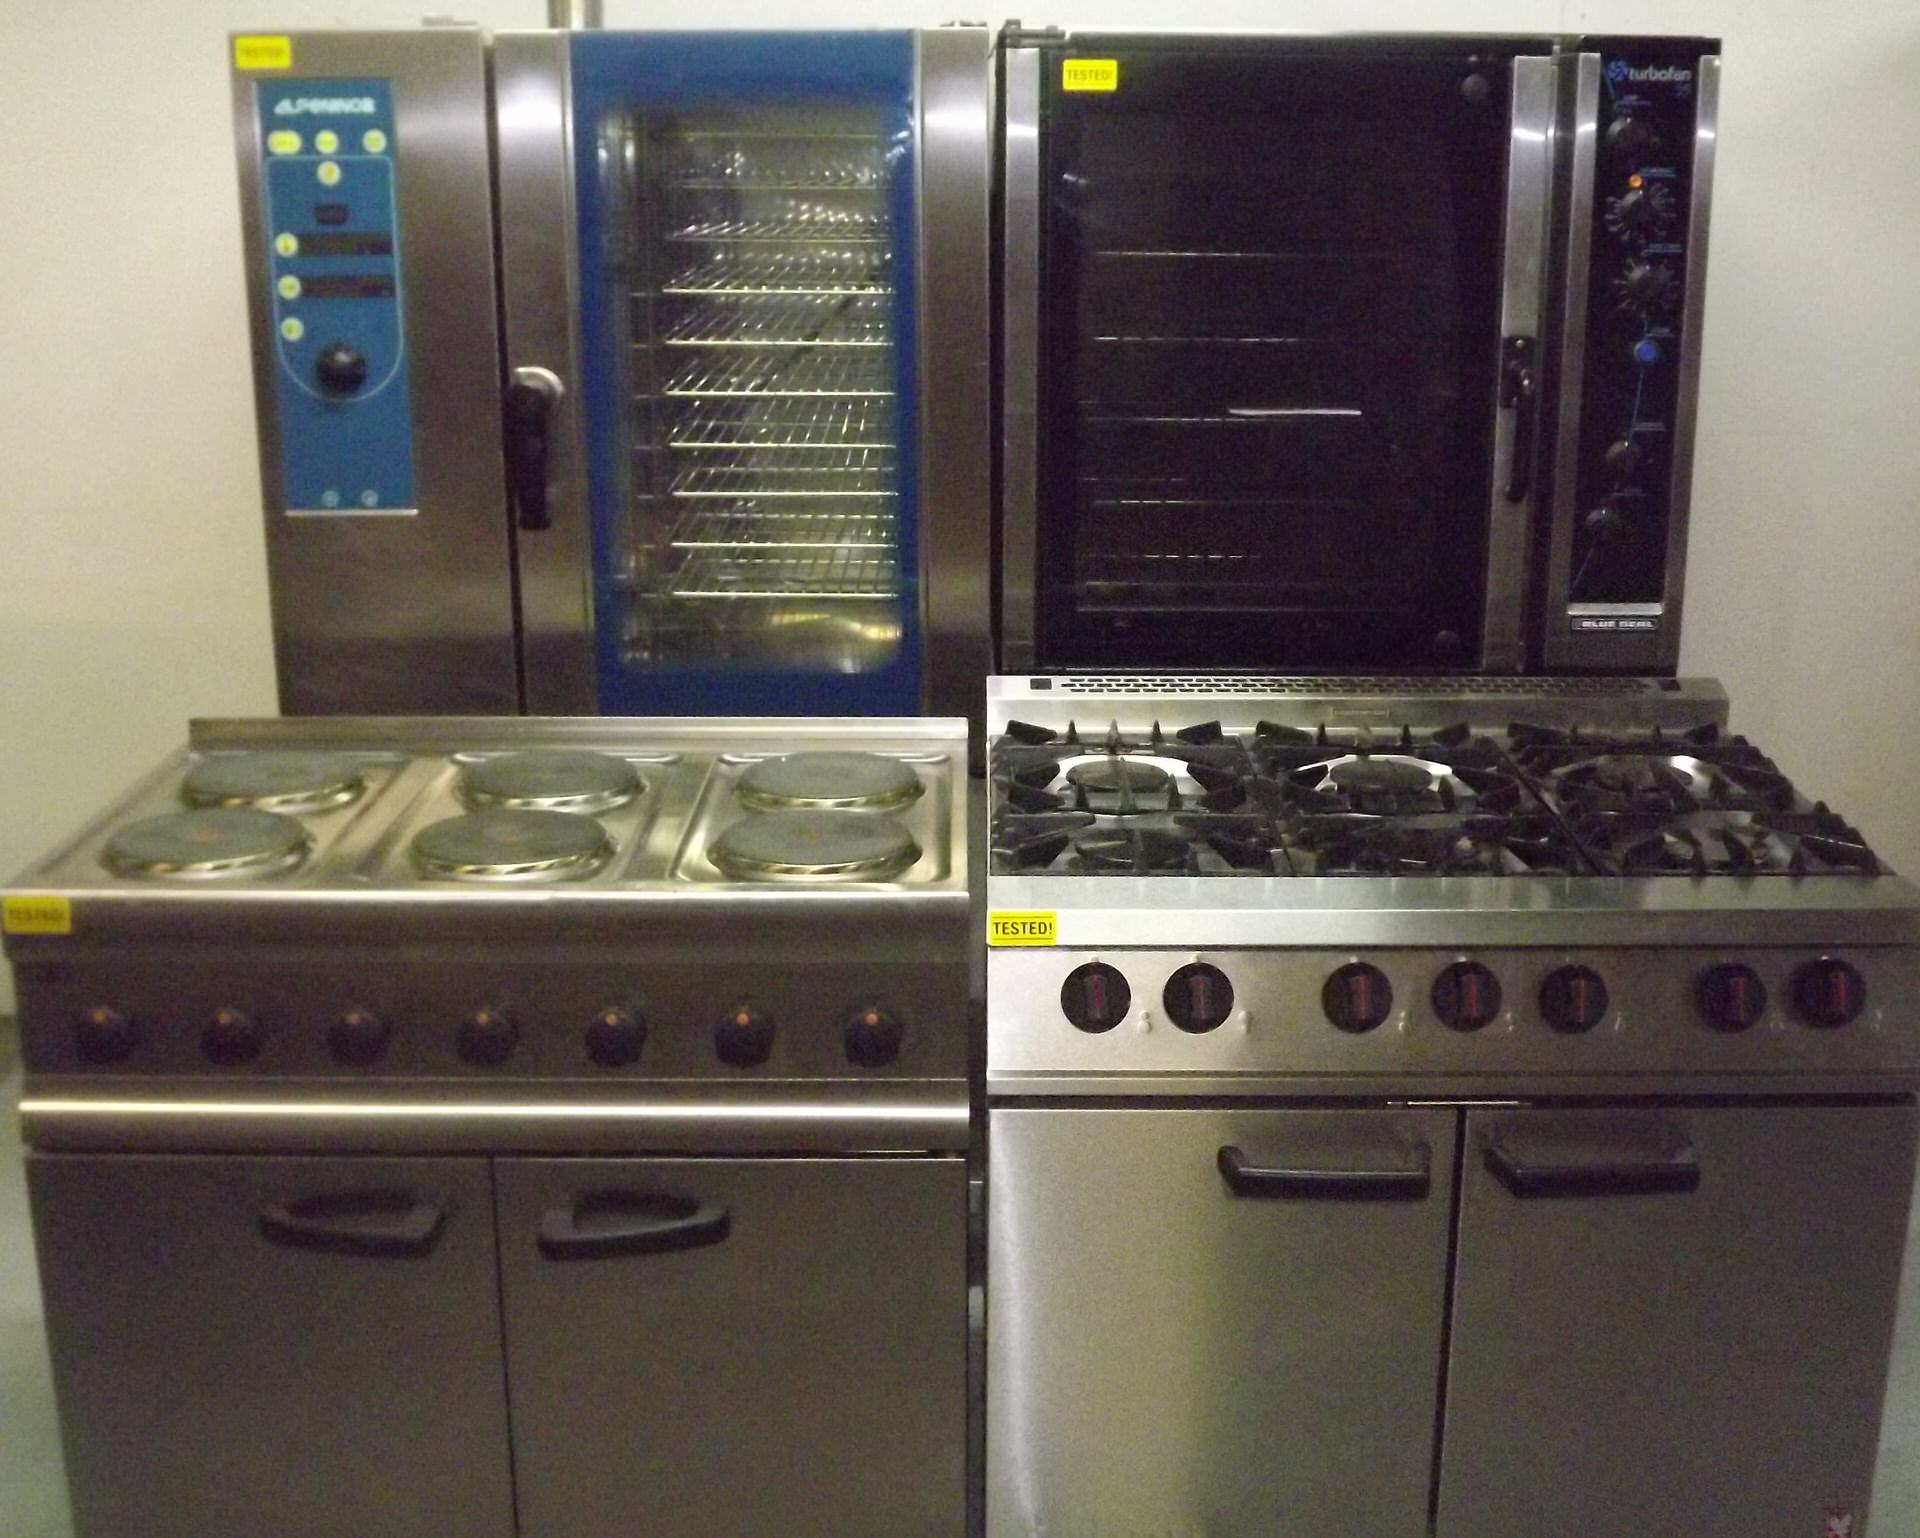 Used <br>Cooking and <br>Hot Storage<br> Equipment